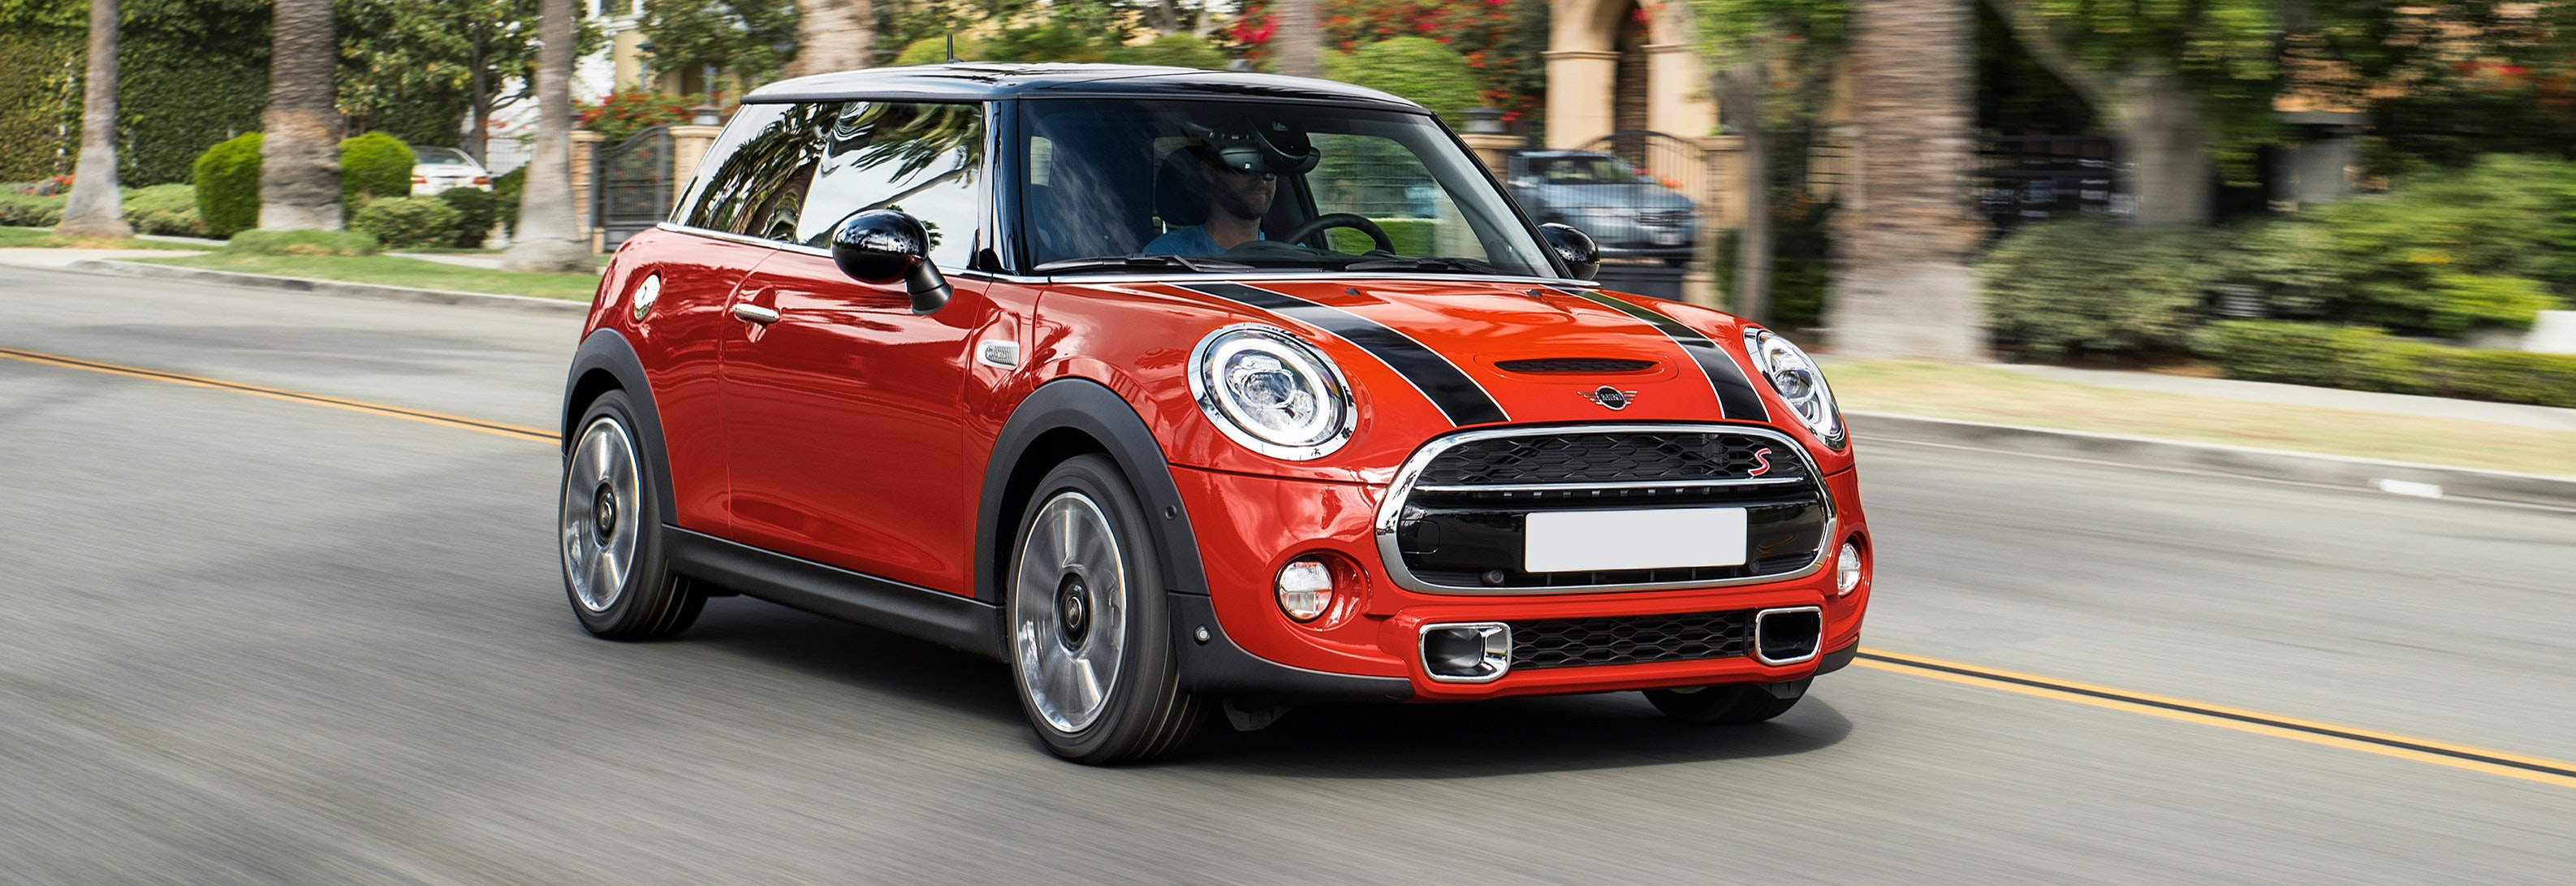 2018 mini cooper s red driving front